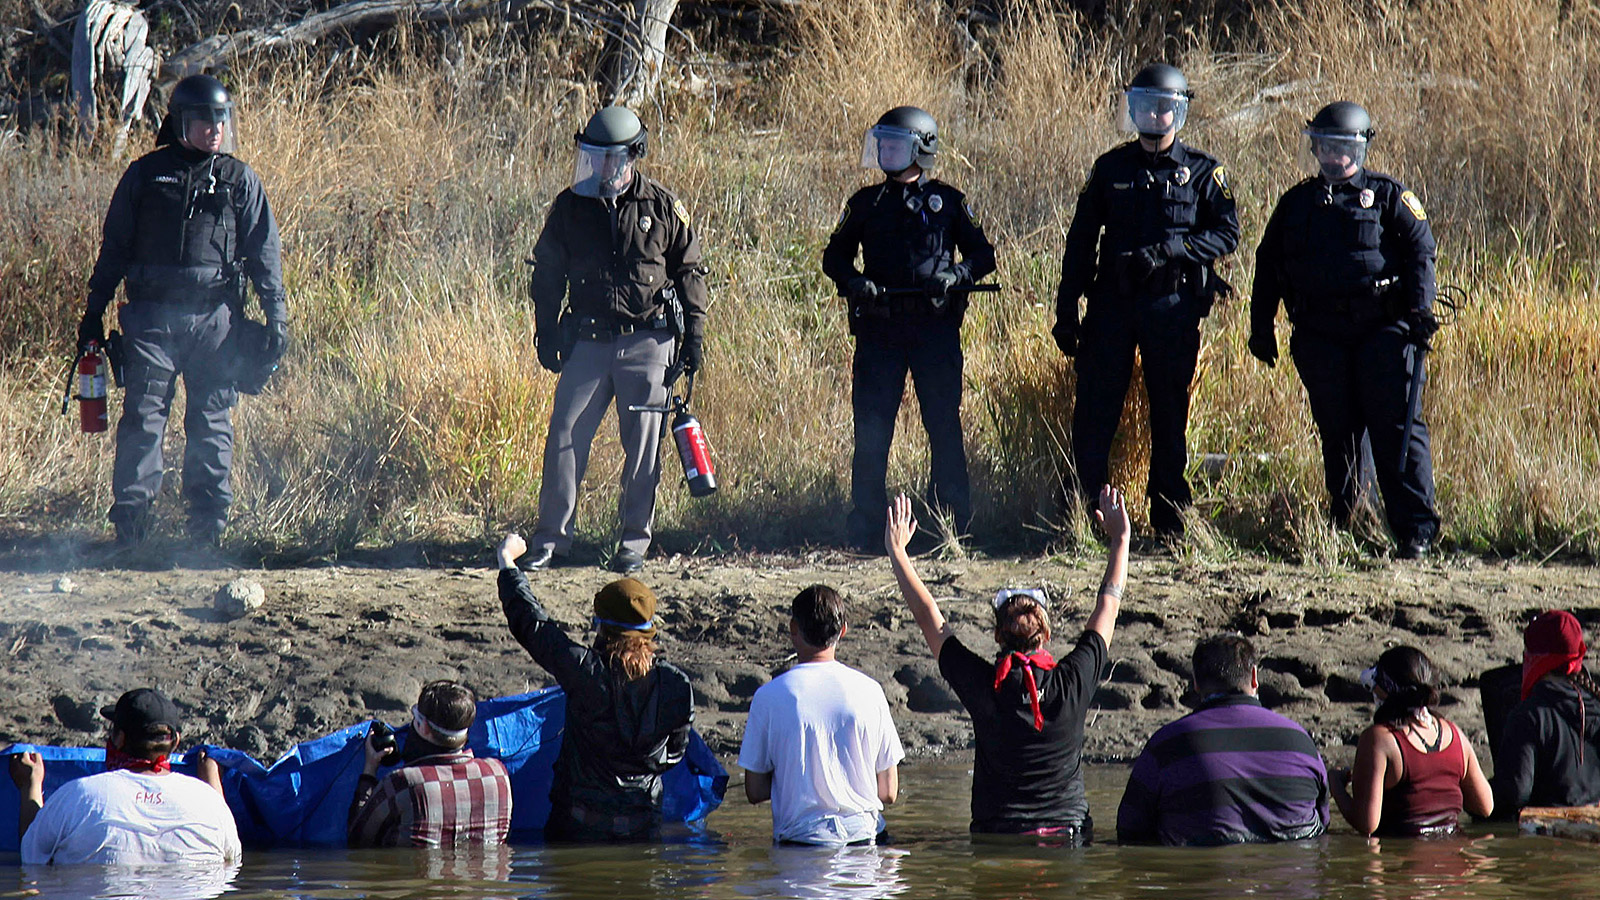 DAPL protestors wading in a creek confront police in riot gear